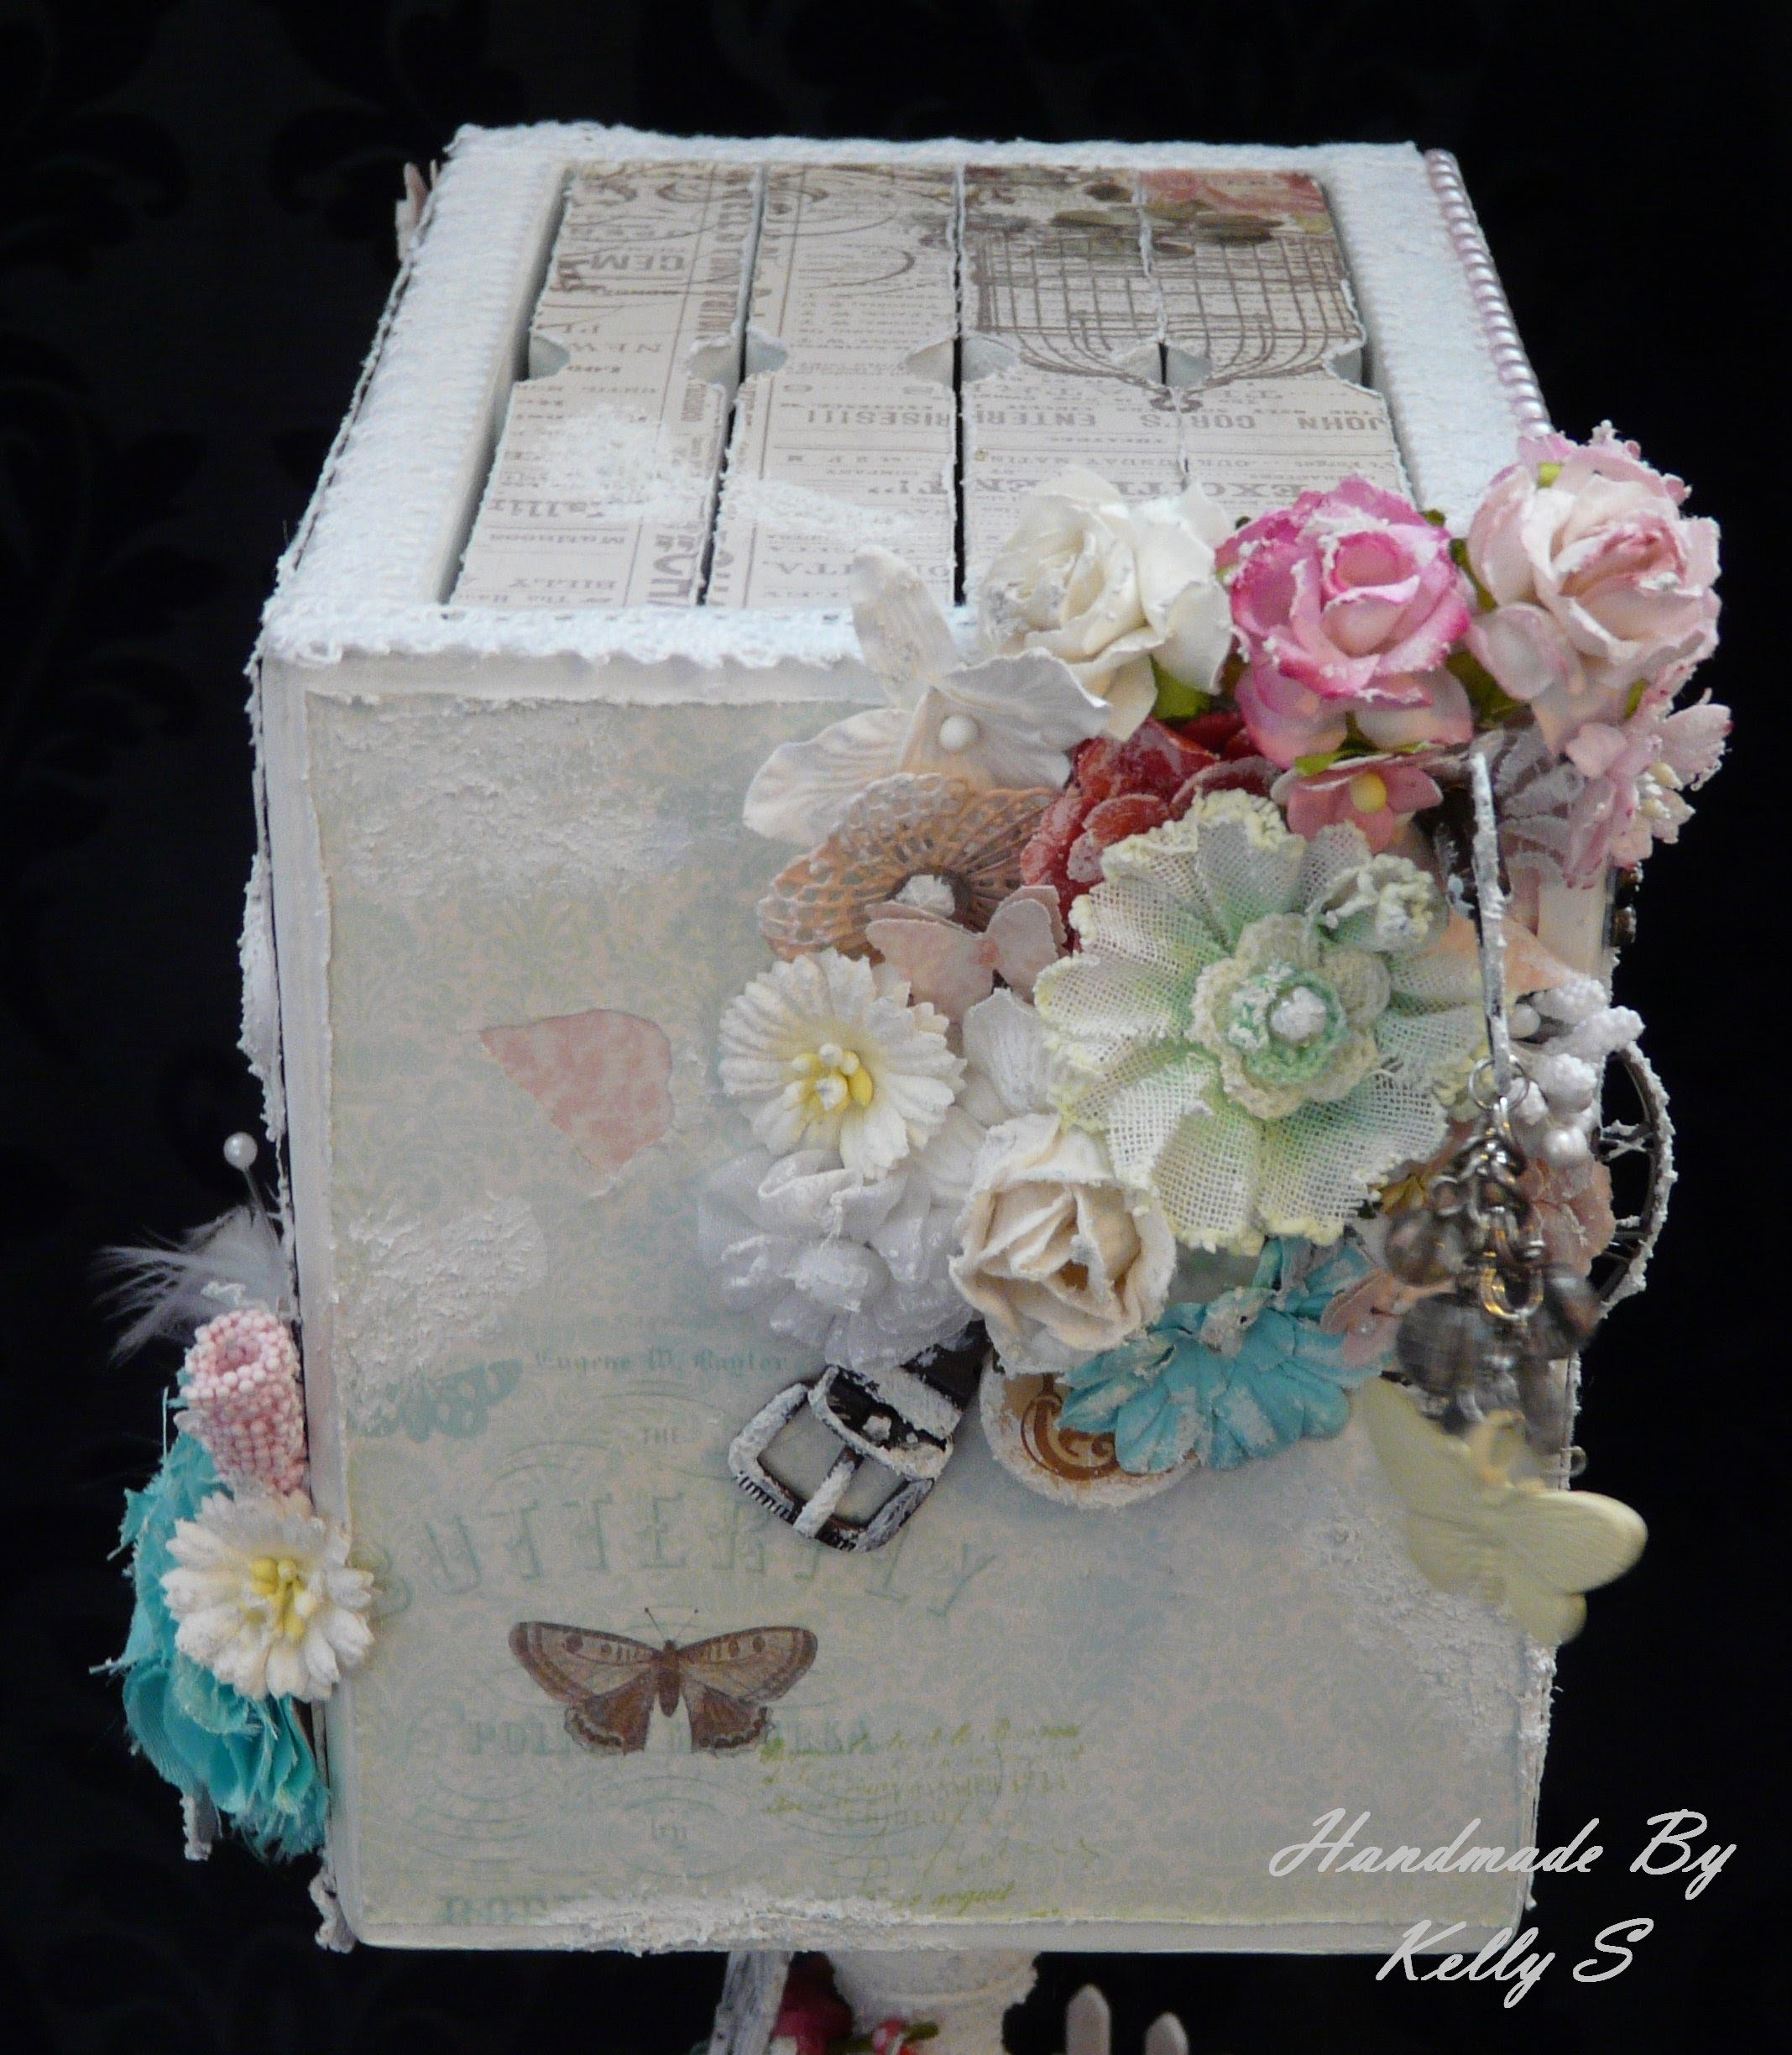 'Family Memories' Photo Album & Decorative Stand - Discount Paper Crafts Design Team Call - Kelly S